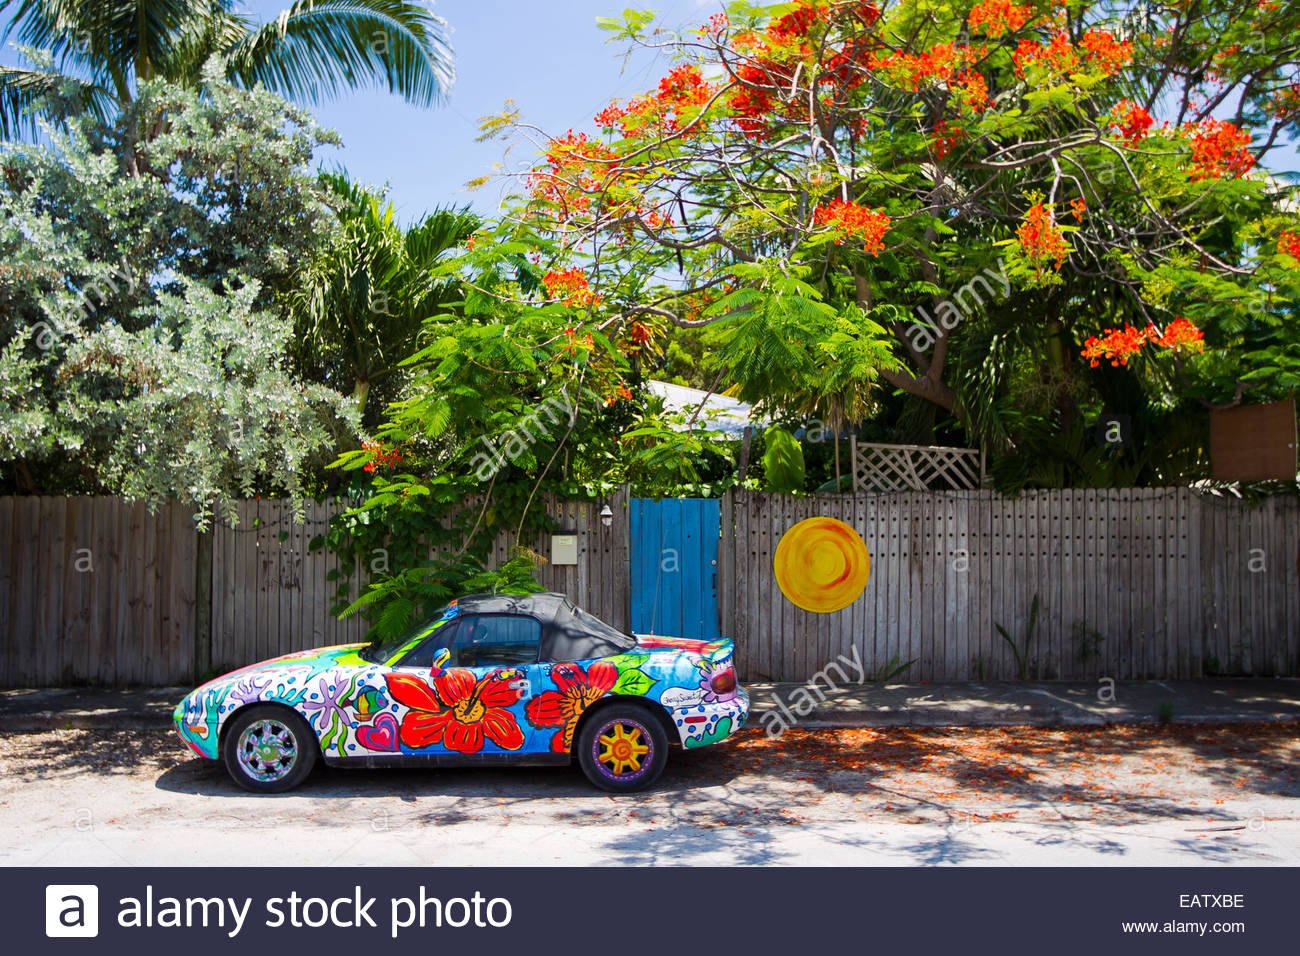 A colorful painted car with flowers is parked on the side walk next to a tree with colorful flowers in Key West, - Stock Image